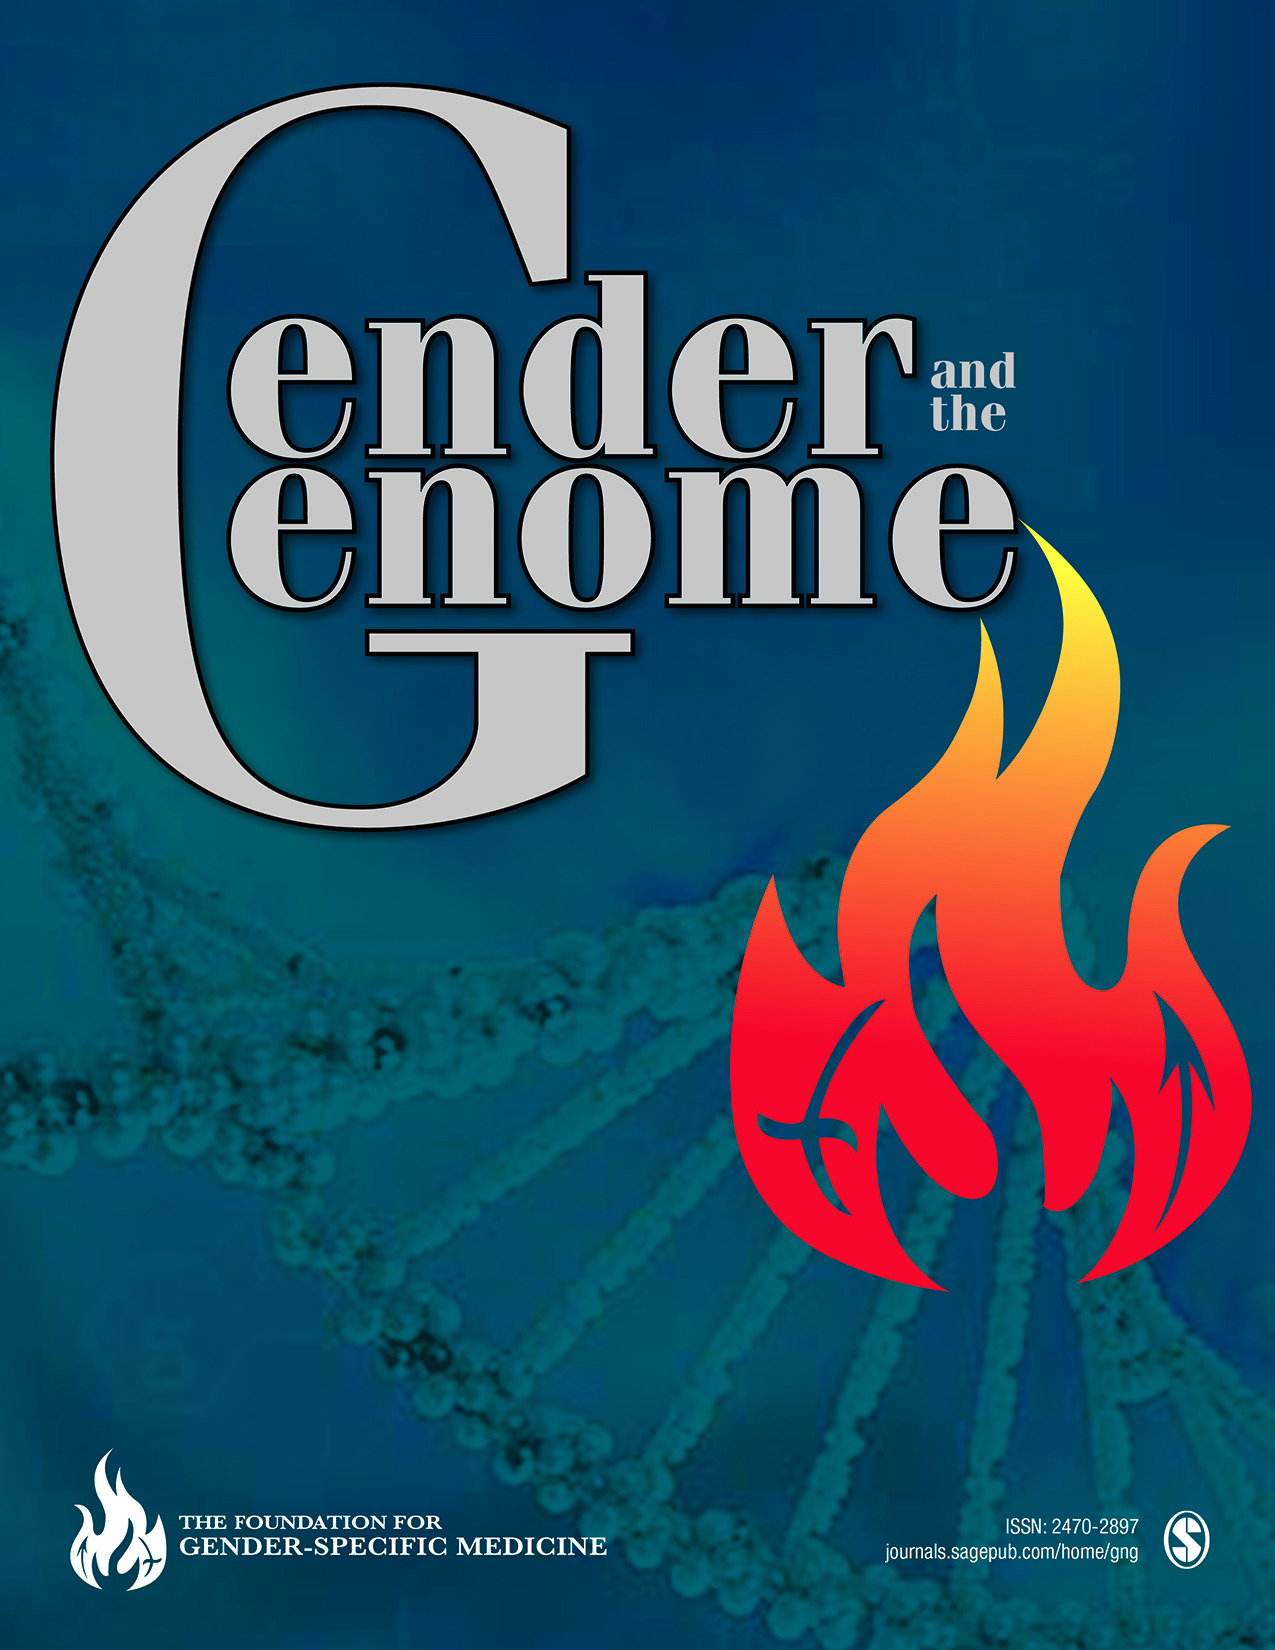 Gender and the Genome